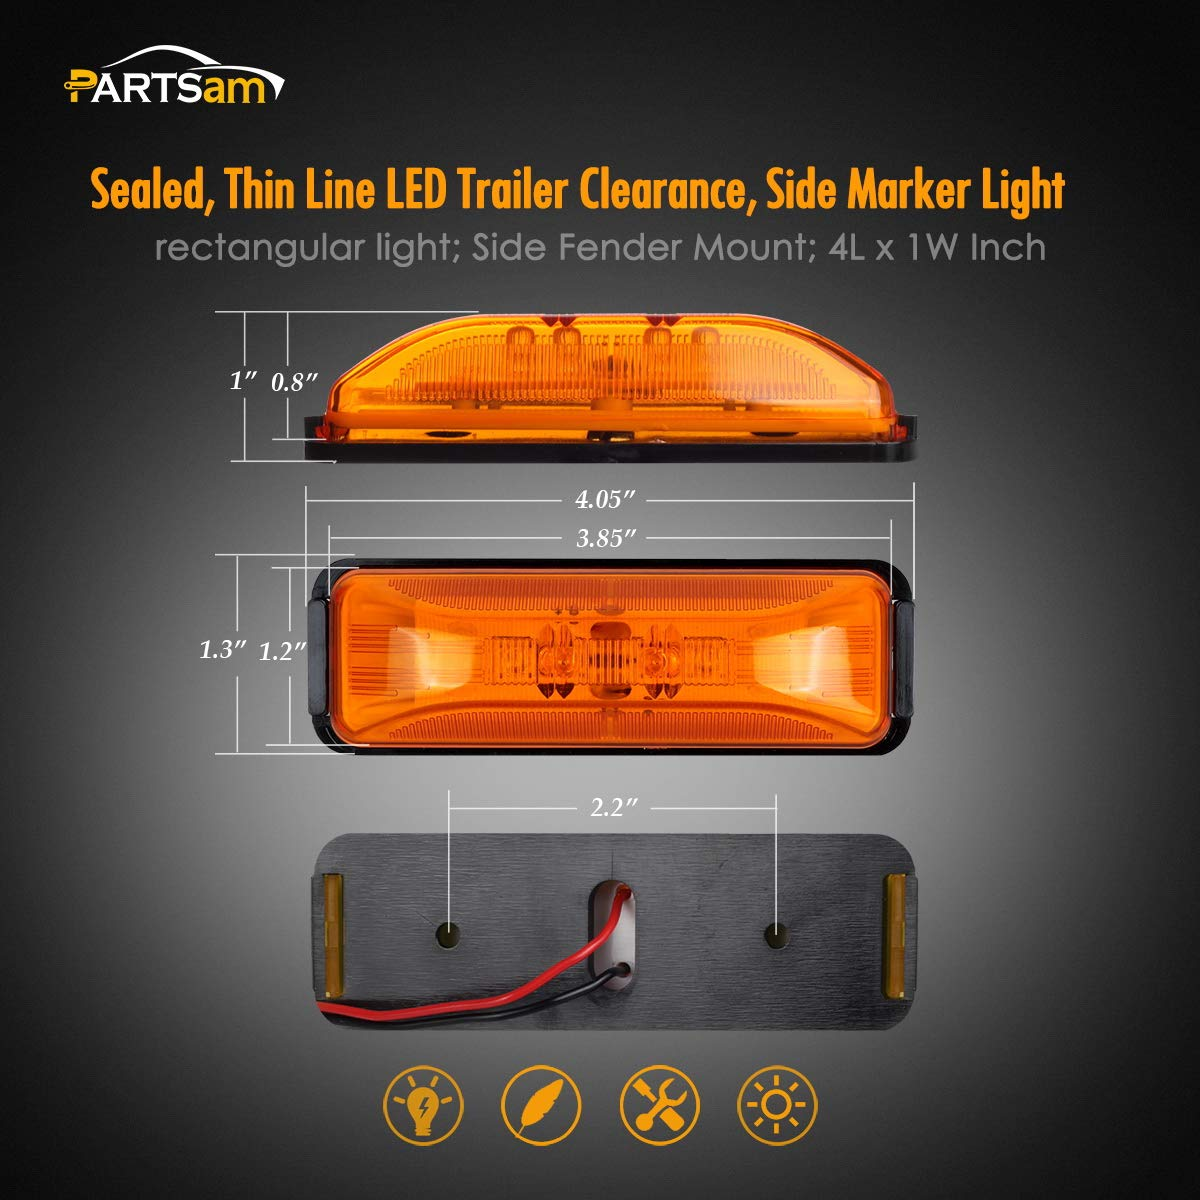 2 prong base 1 12 diode LED Light 1x4 Surface AMBER Clearance Marker trailer